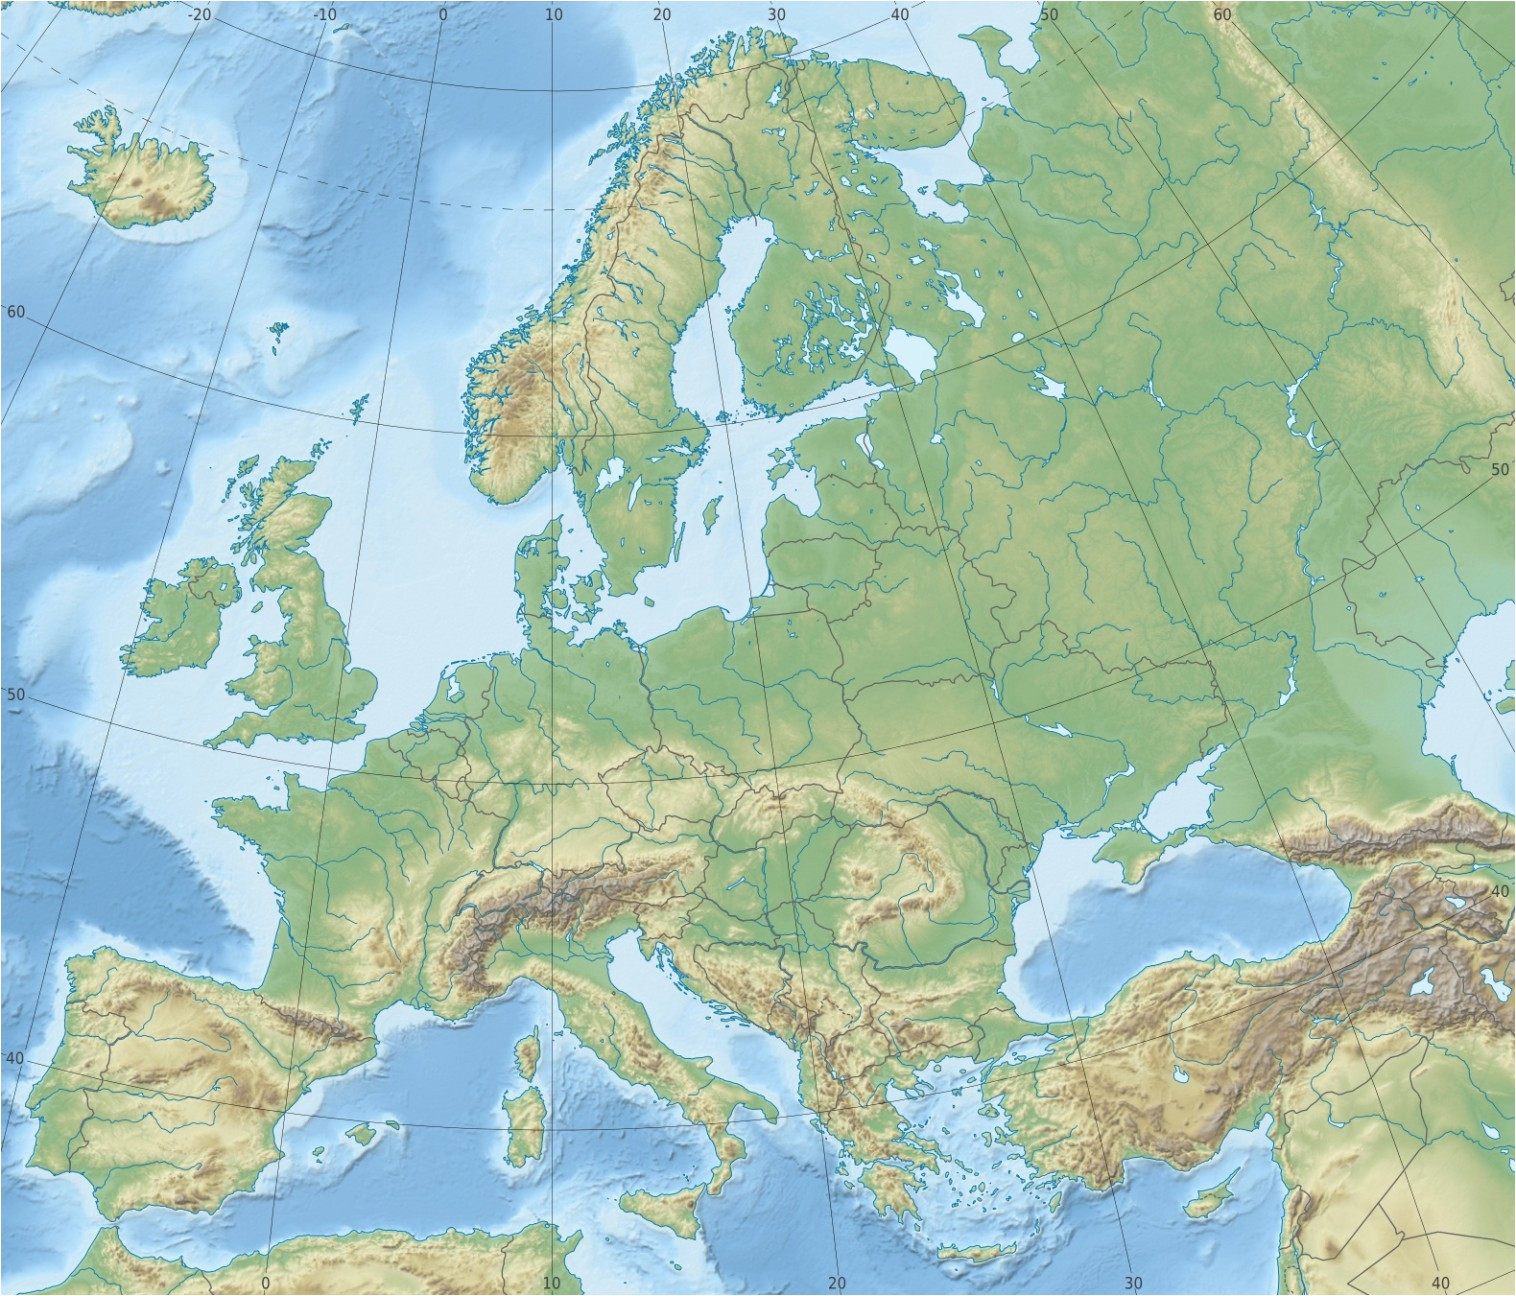 Topographical Map Of Europe Europe topographic Map Climatejourney org